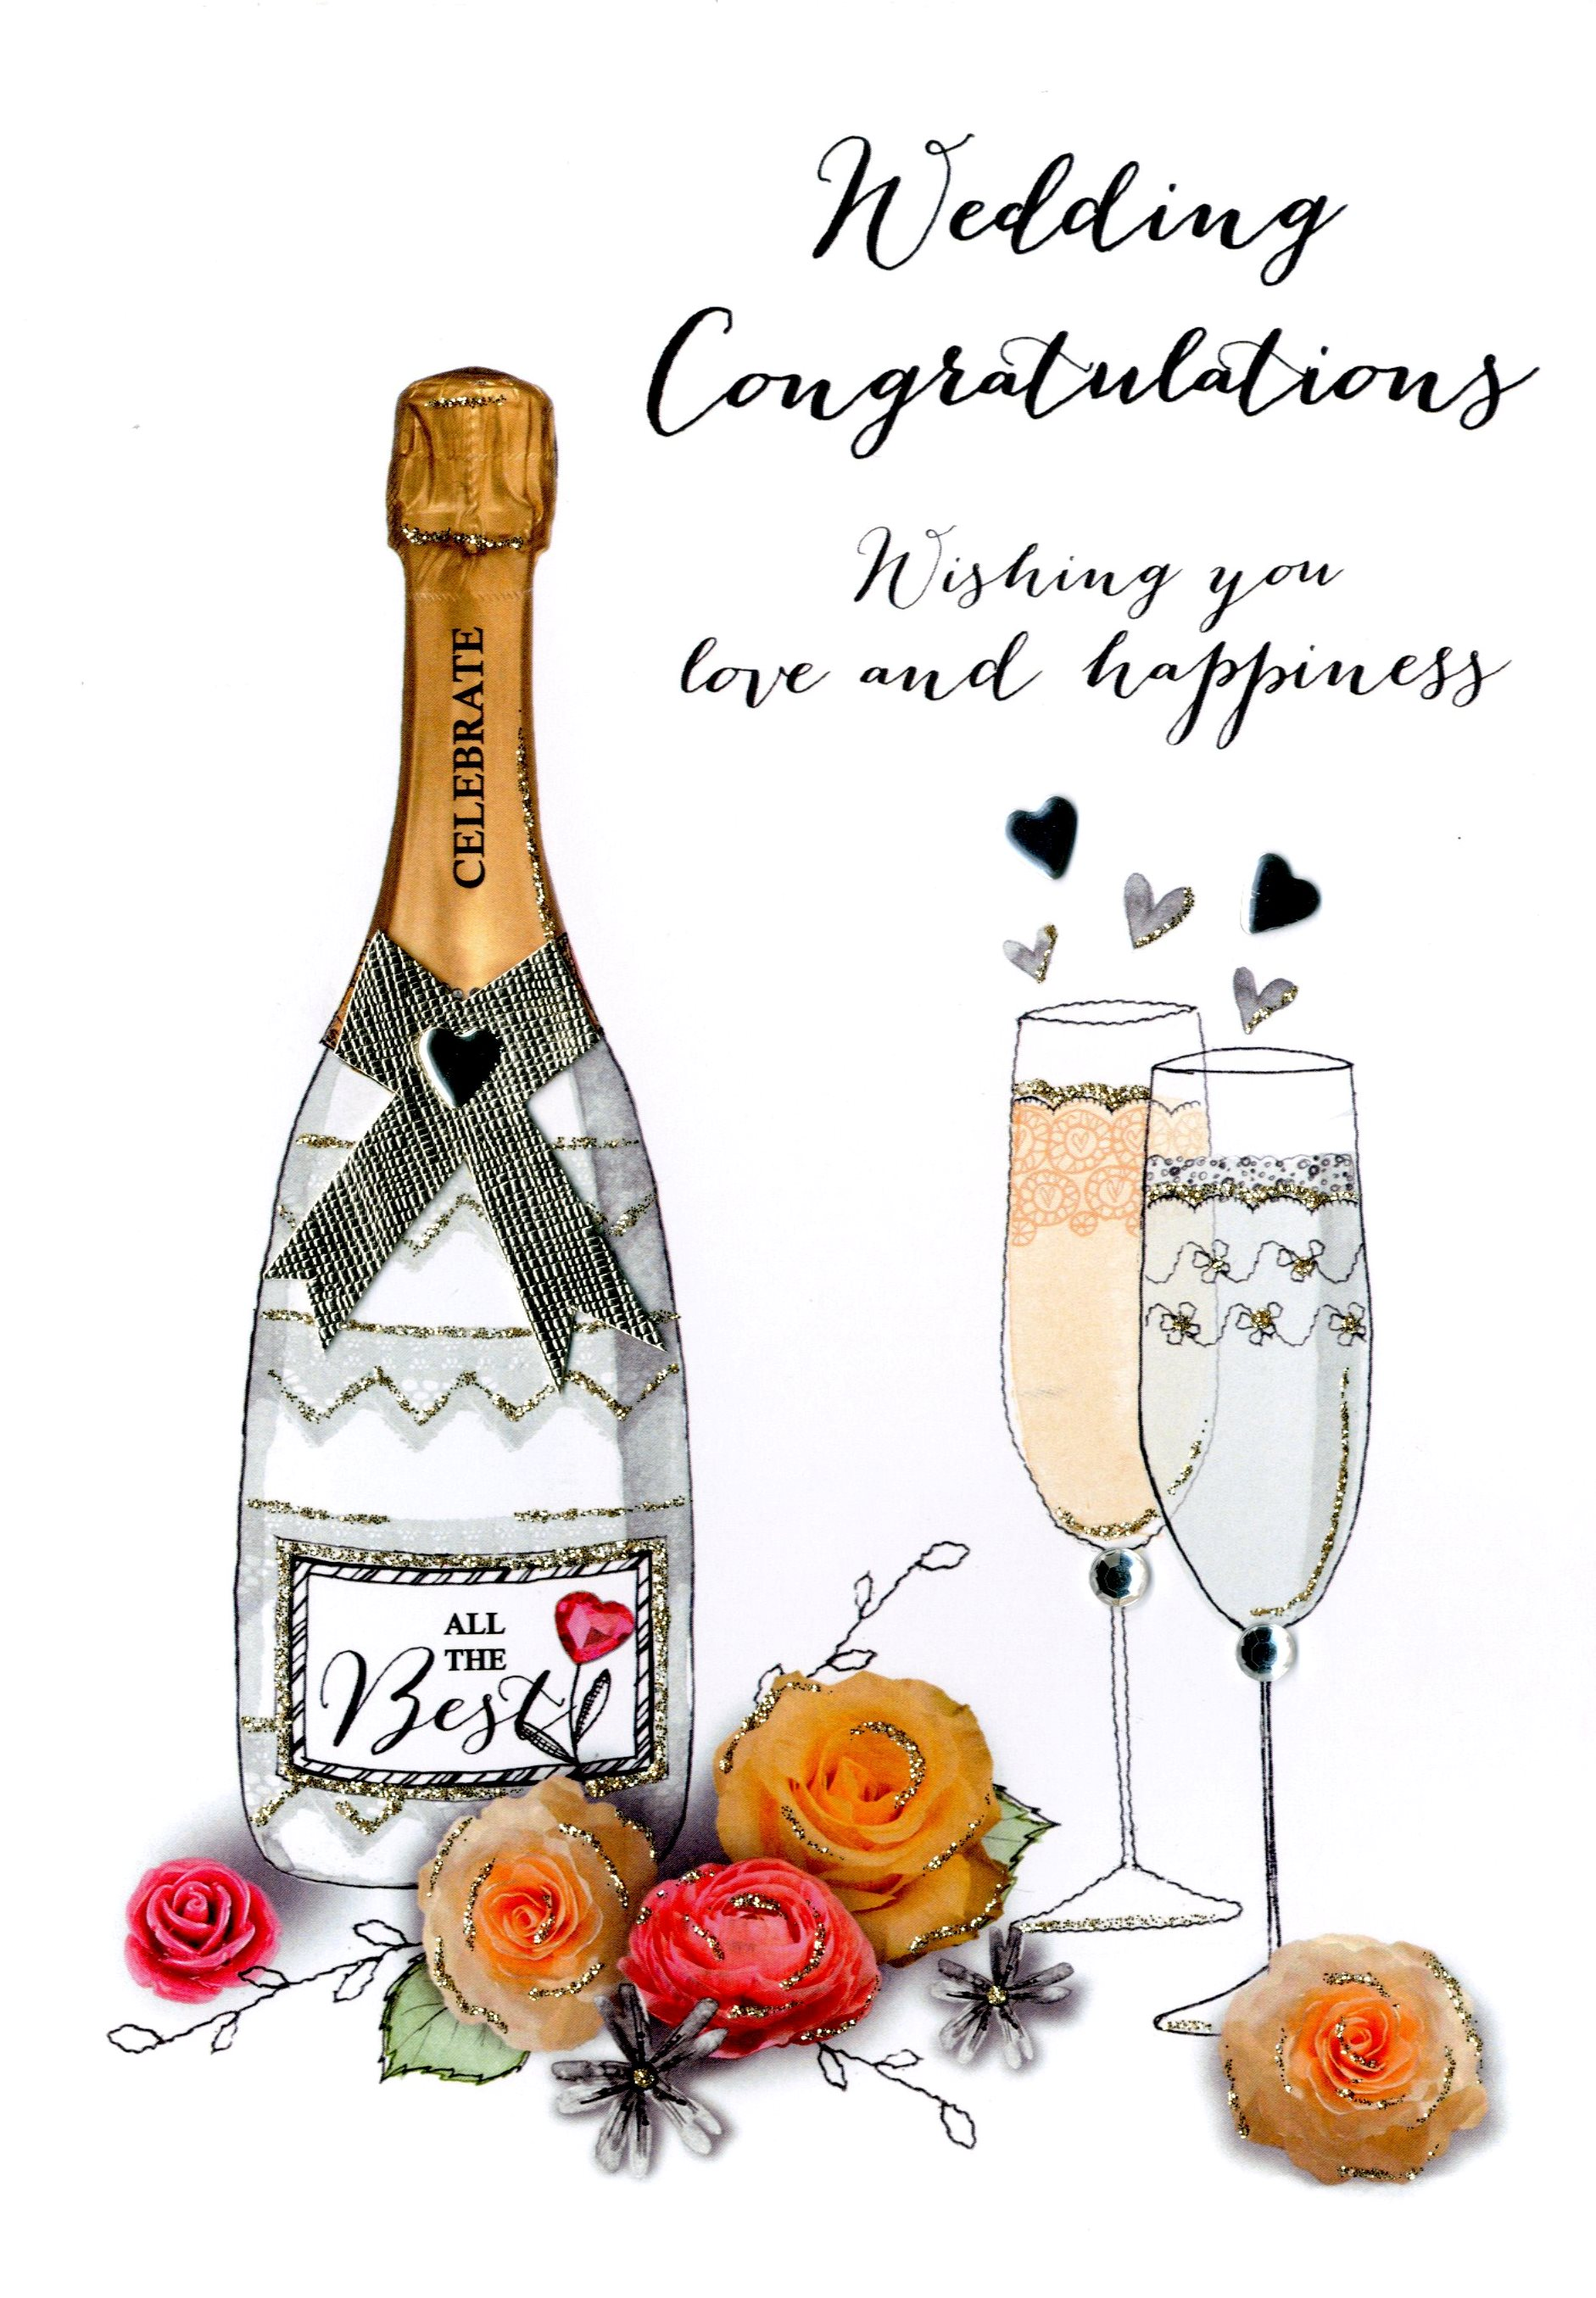 wedding congratulations embellished greeting card  cards